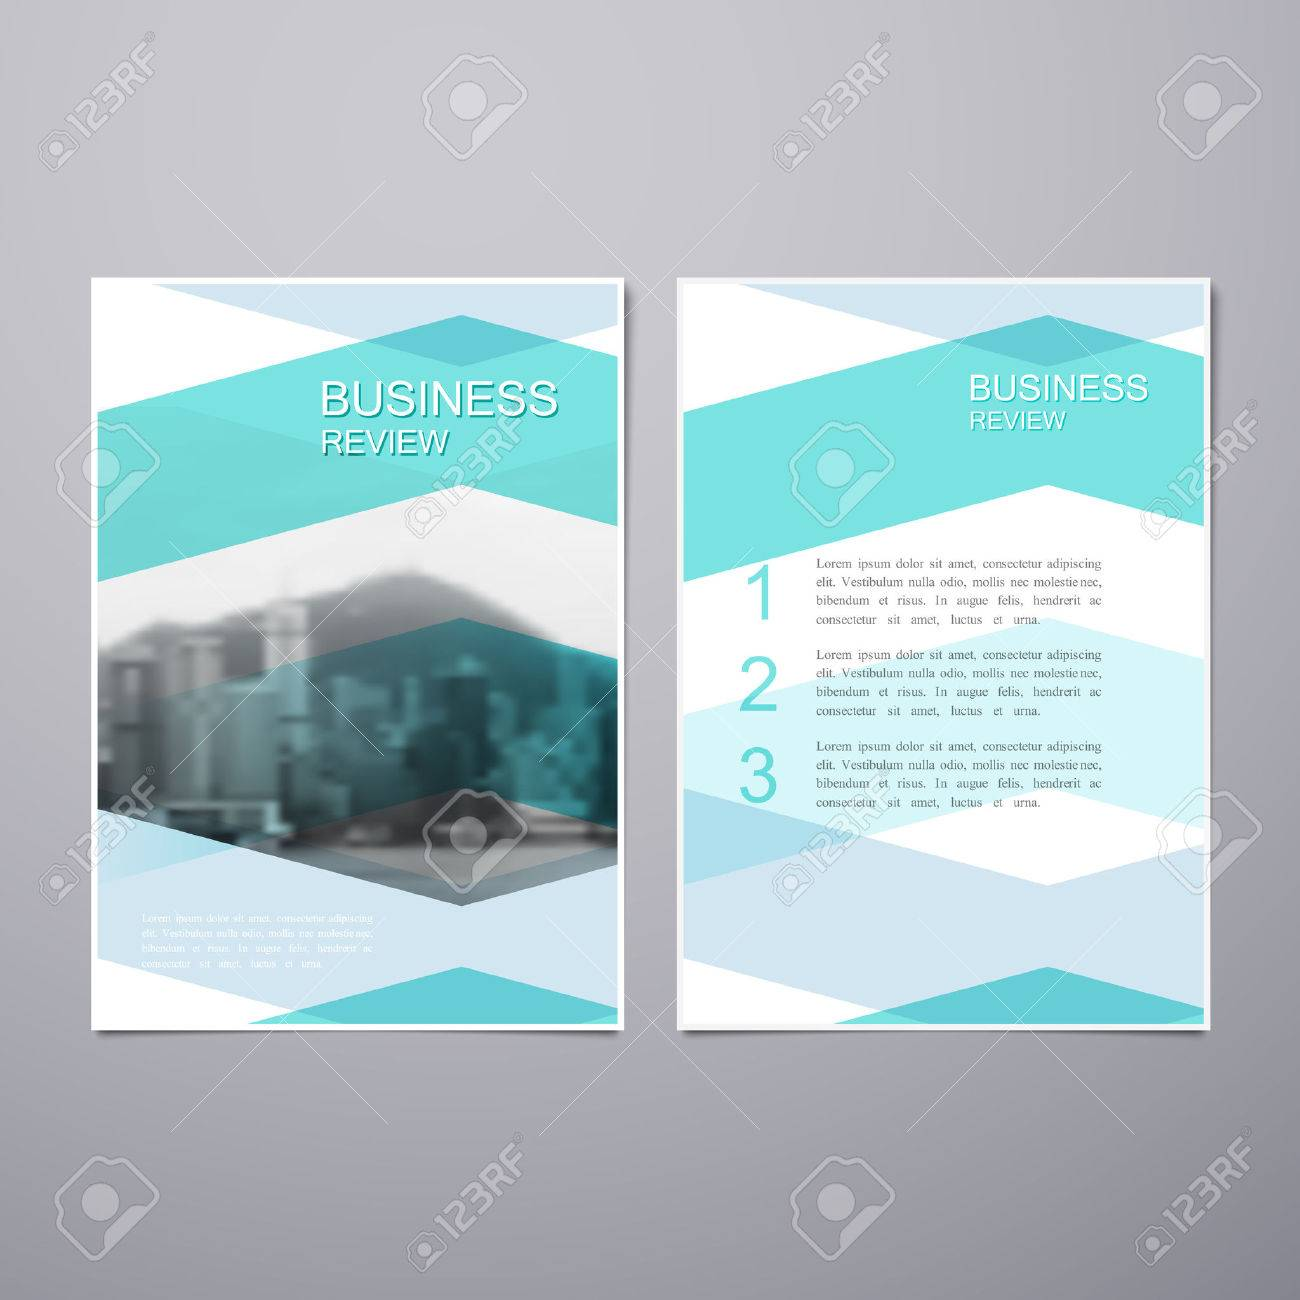 Business Review Leaflet Brochure Or Flyer A4 Size Template Design – Business Review Template